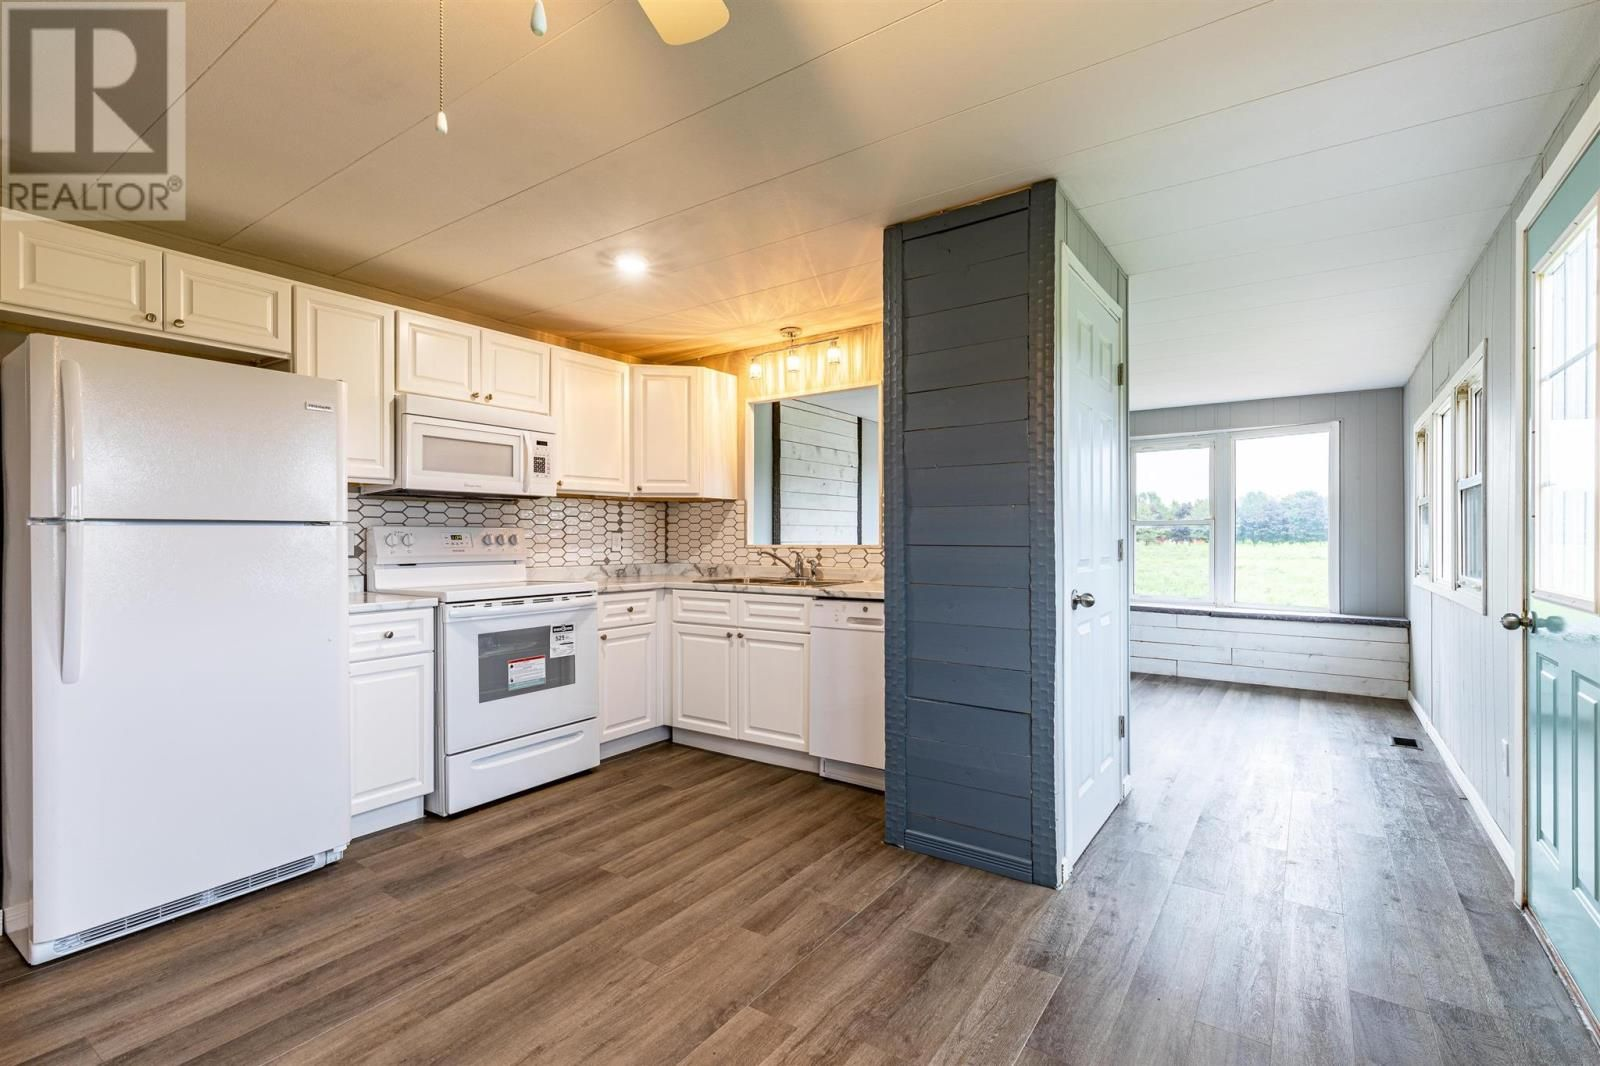 Photo 4: Photos: 4384 Route 11 in St. Nicholas: House for sale : MLS®# 202123302